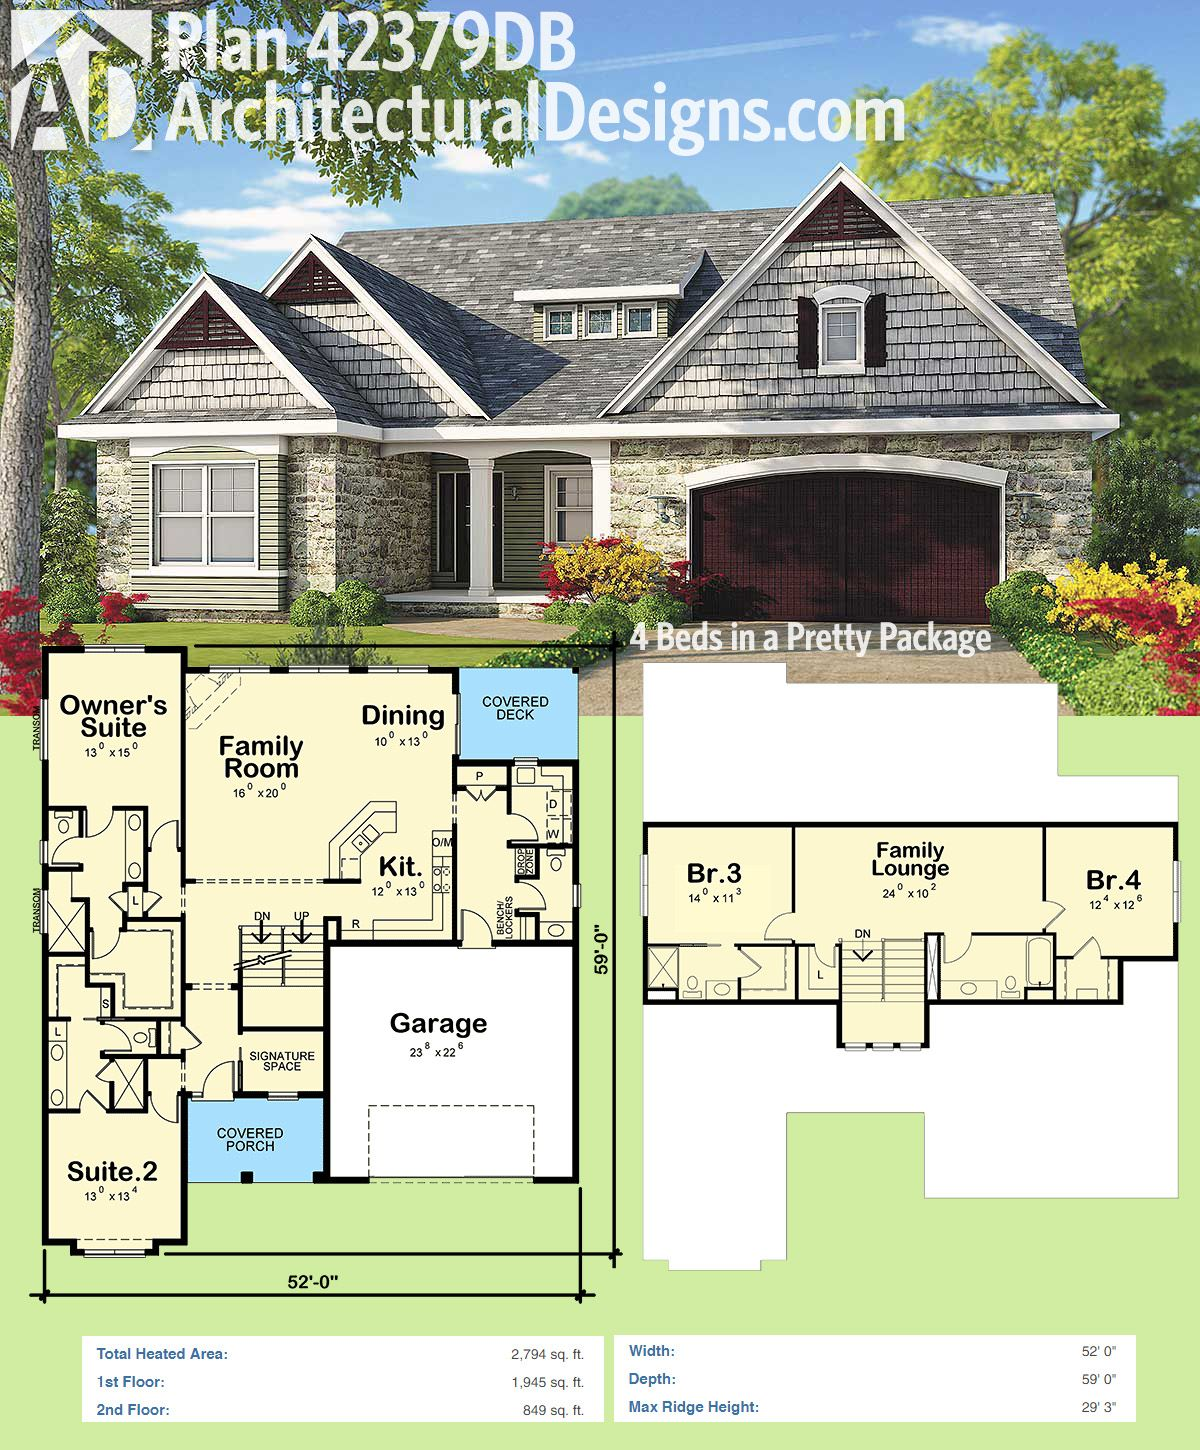 Home Design Ideas Floor Plans: Plan 42379DB: 4 Beds In A Pretty Package